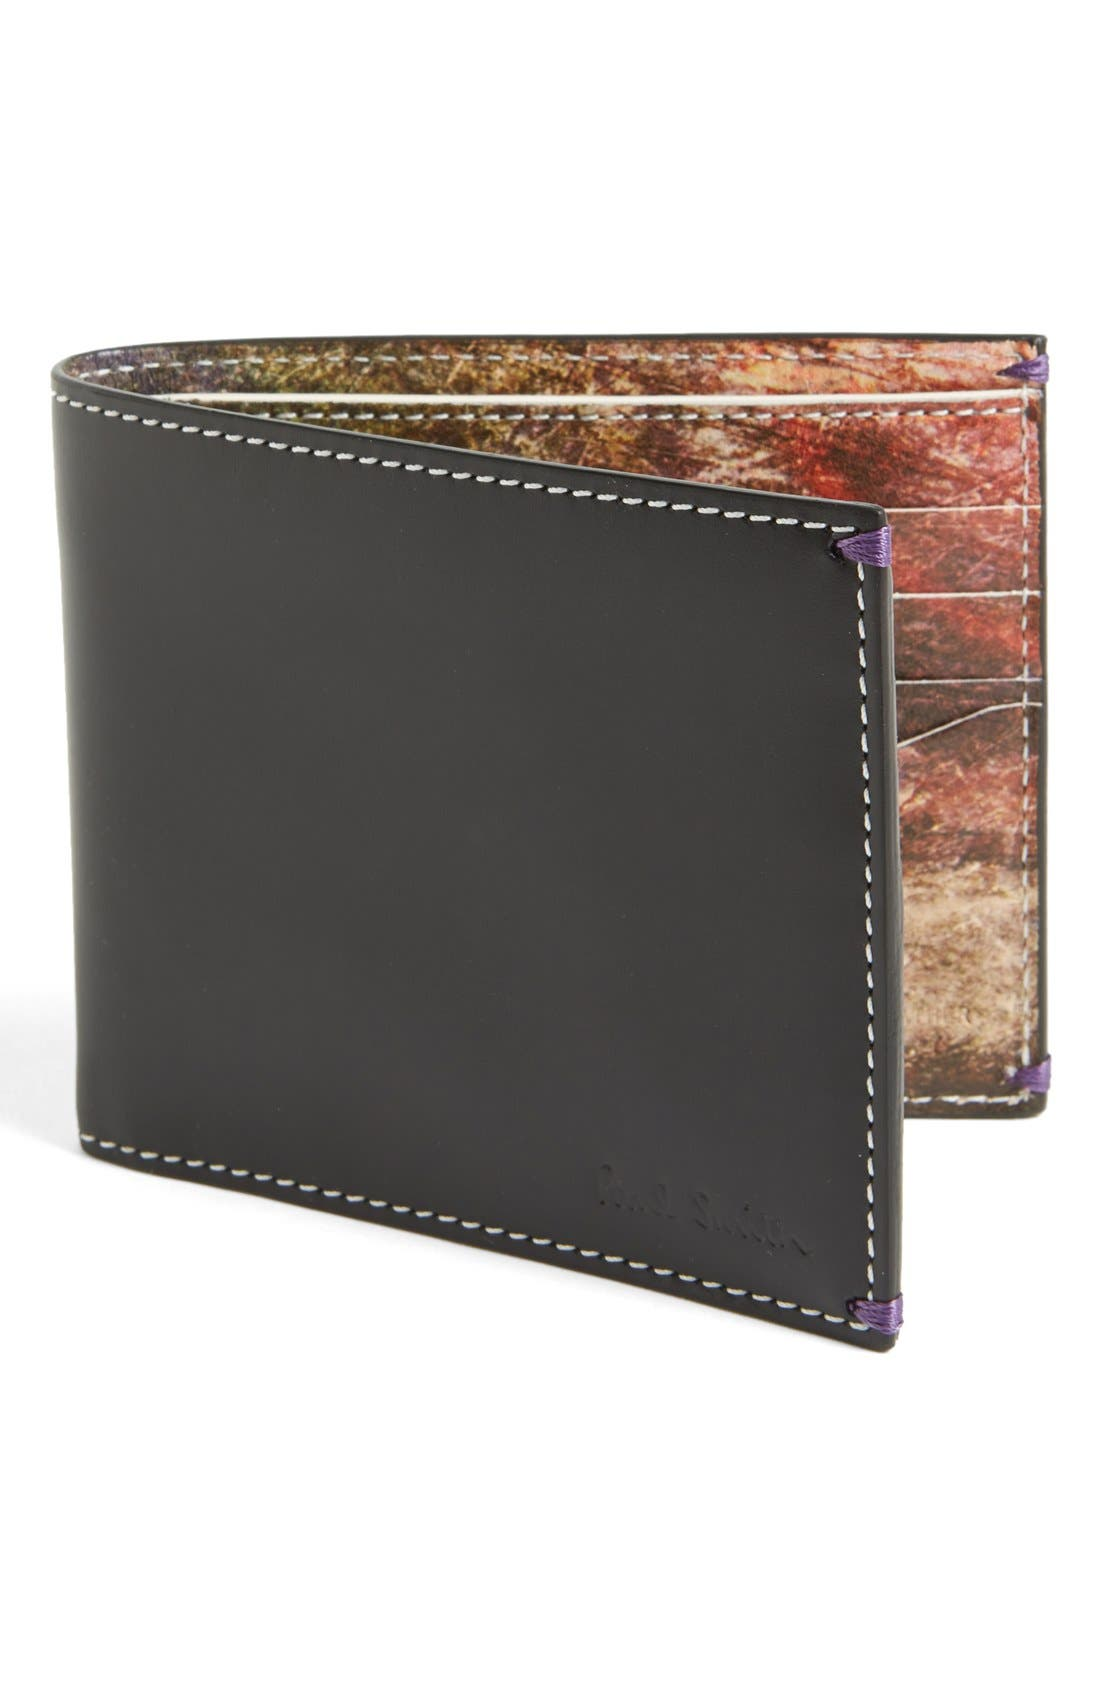 Alternate Image 1 Selected - Paul Smith Car Print Leather Wallet